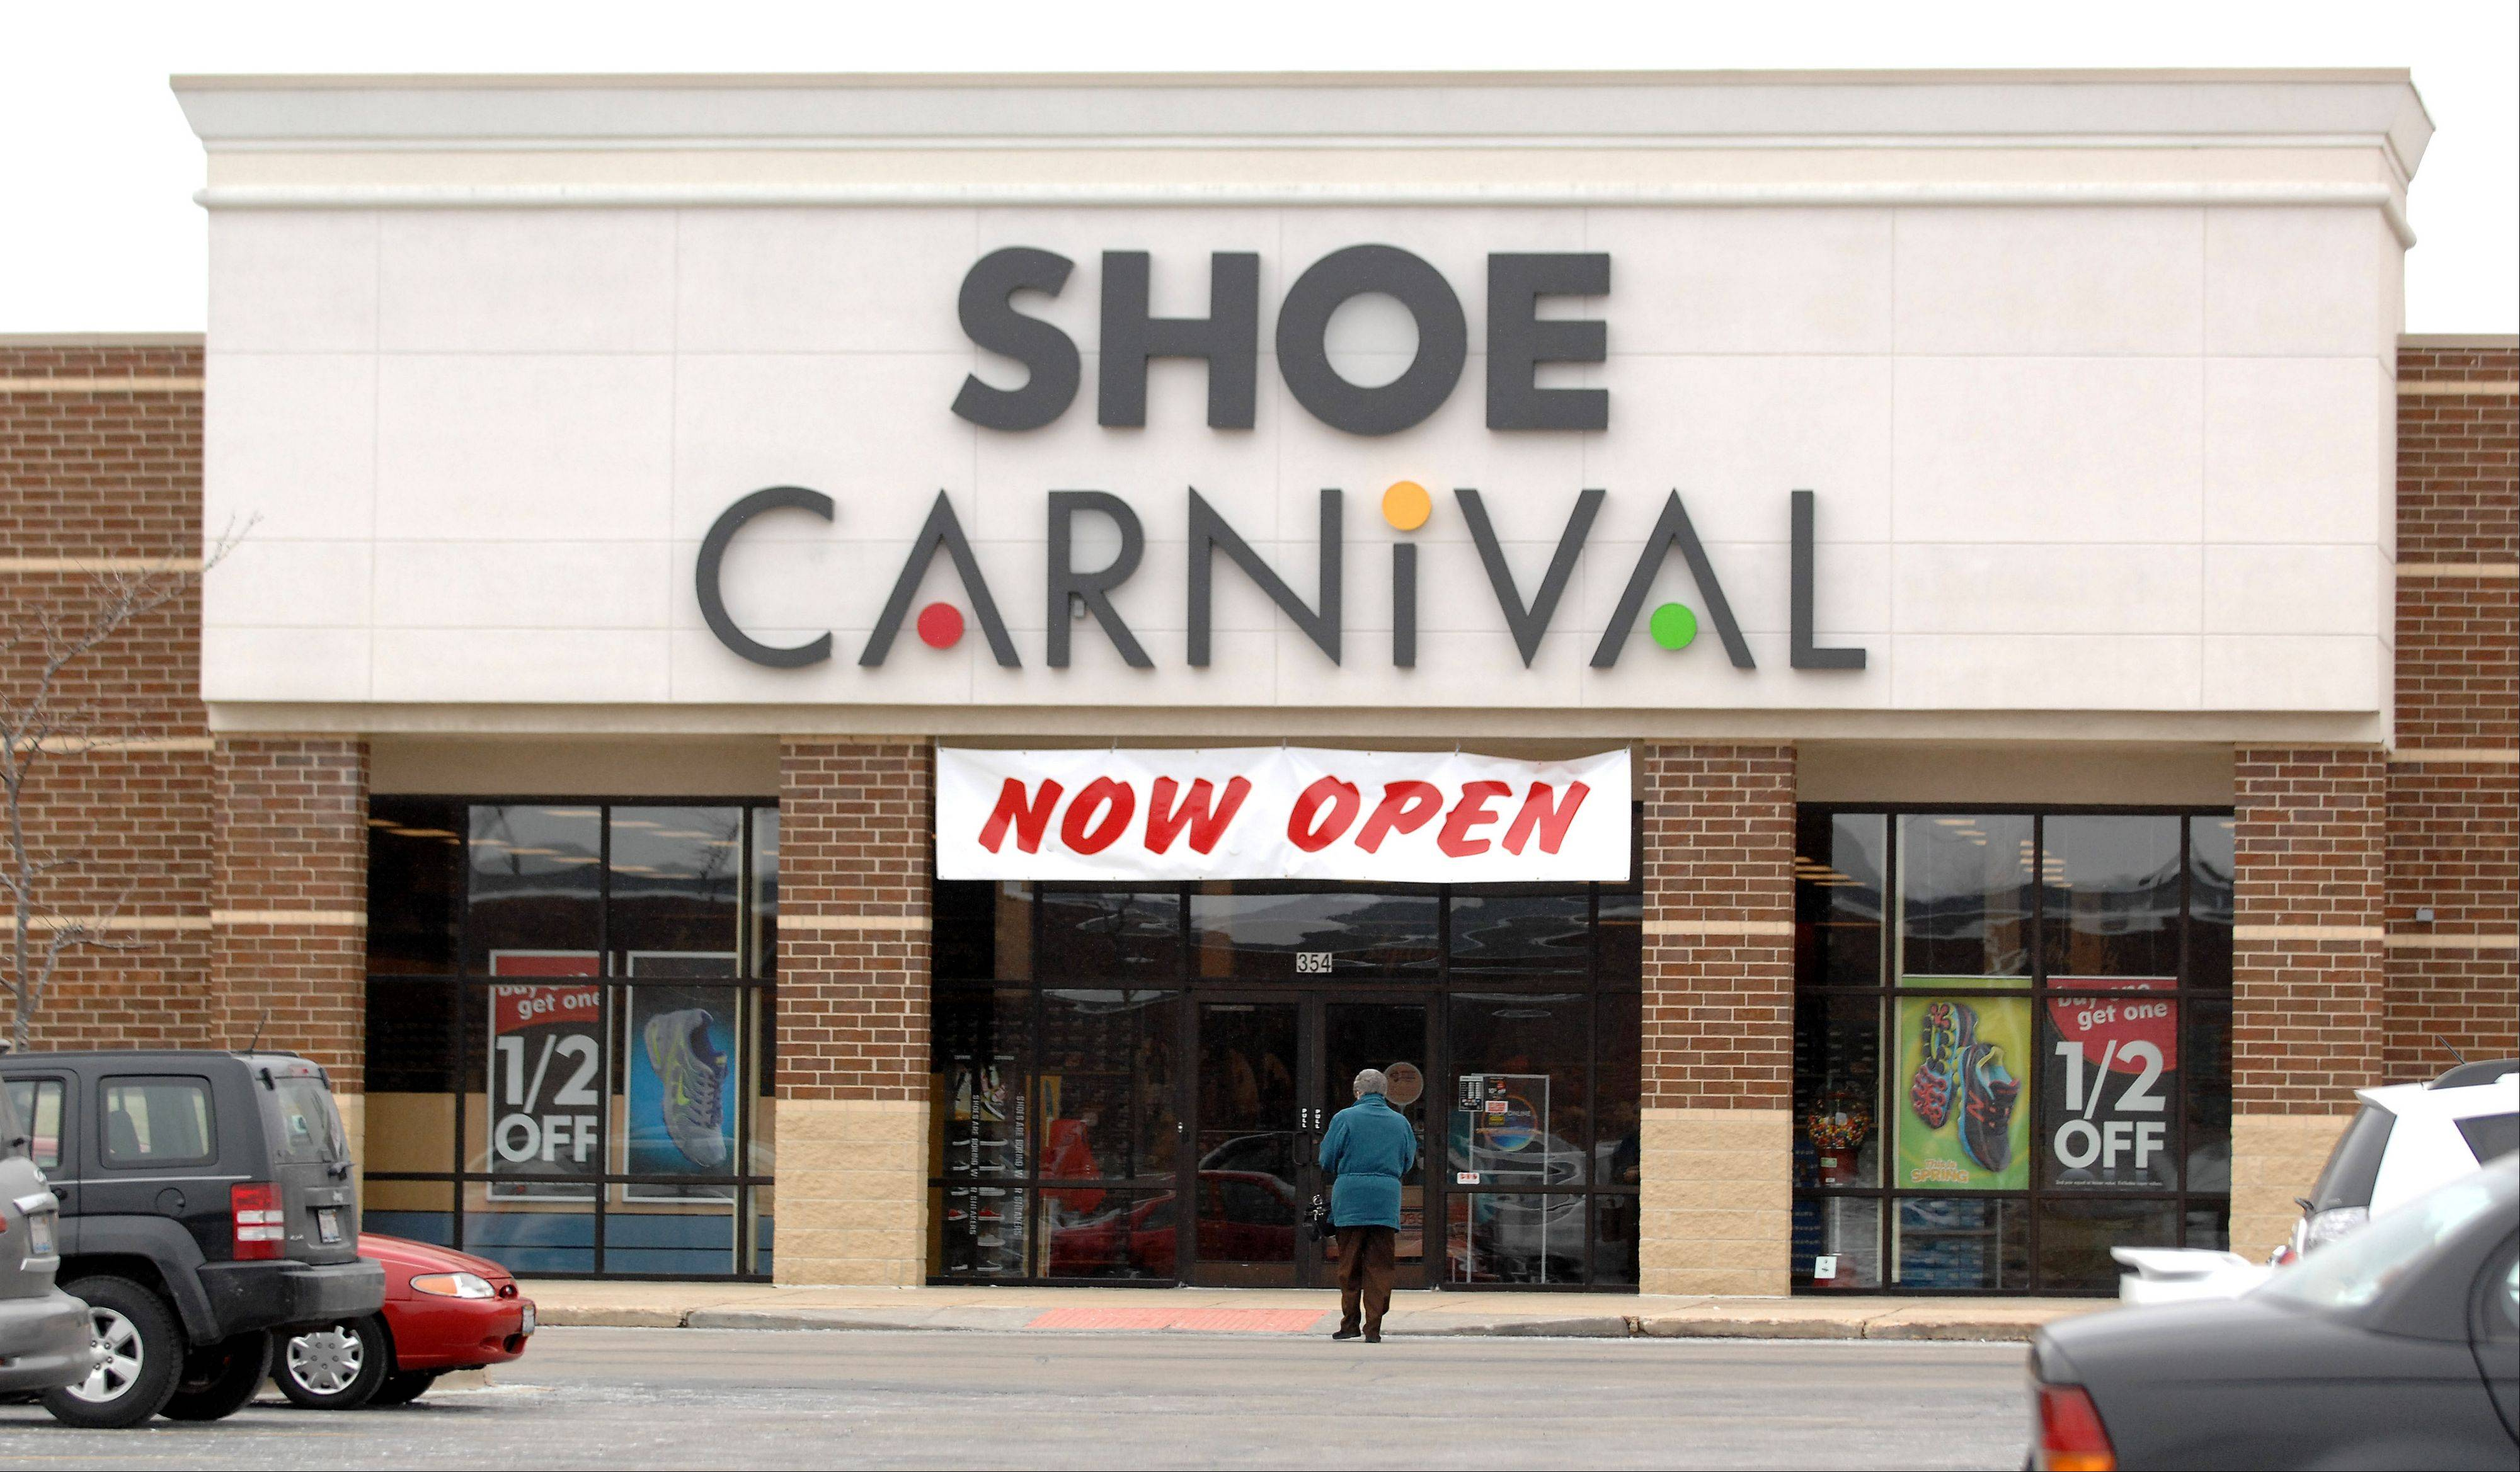 Shoe Carnival has opened a new location on Randall Road in South Elgin near Kohl's and TJ Maxx.